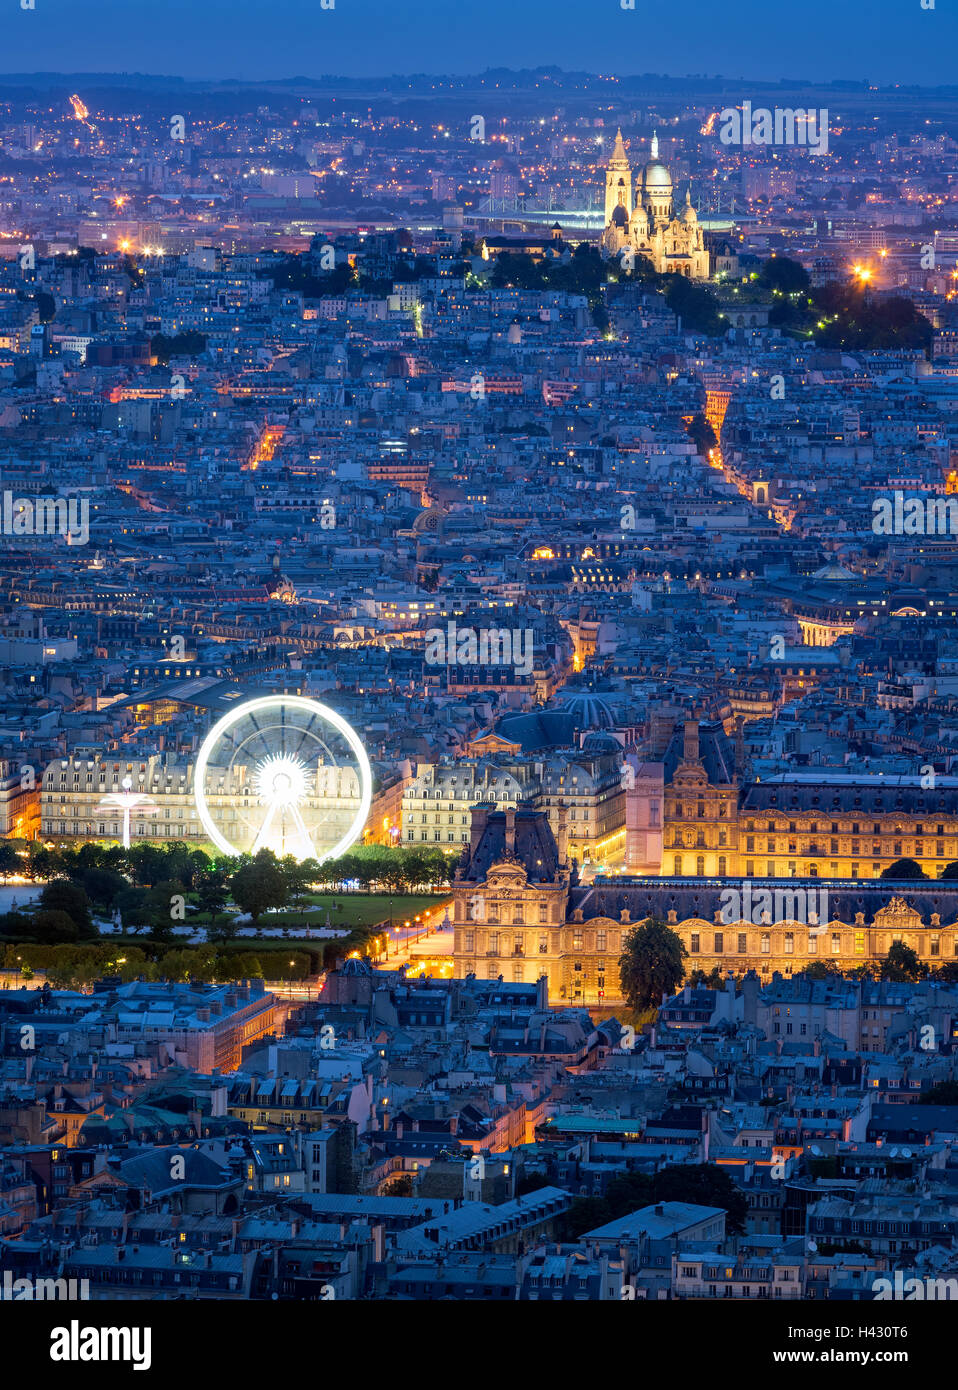 Aerial view of Paris rooftops at dusk, including The Louvre, and Sacre Coeur in Montmartre. Blue hour in the City Stock Photo